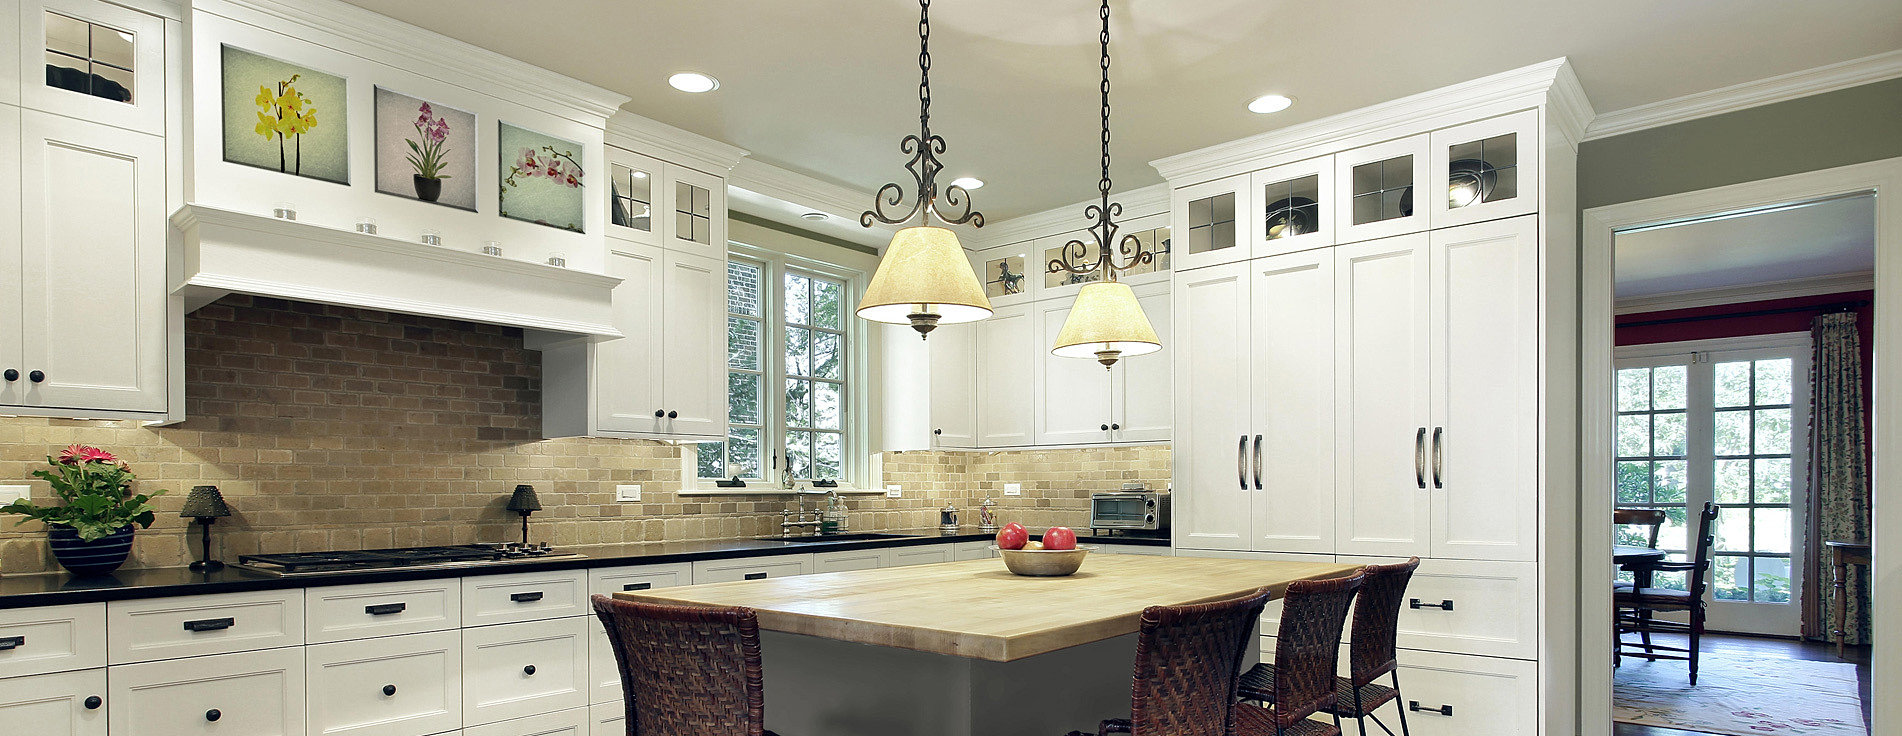 kitchenremodeling beach kitchen cabinets Kitchen Remodeling Contractor